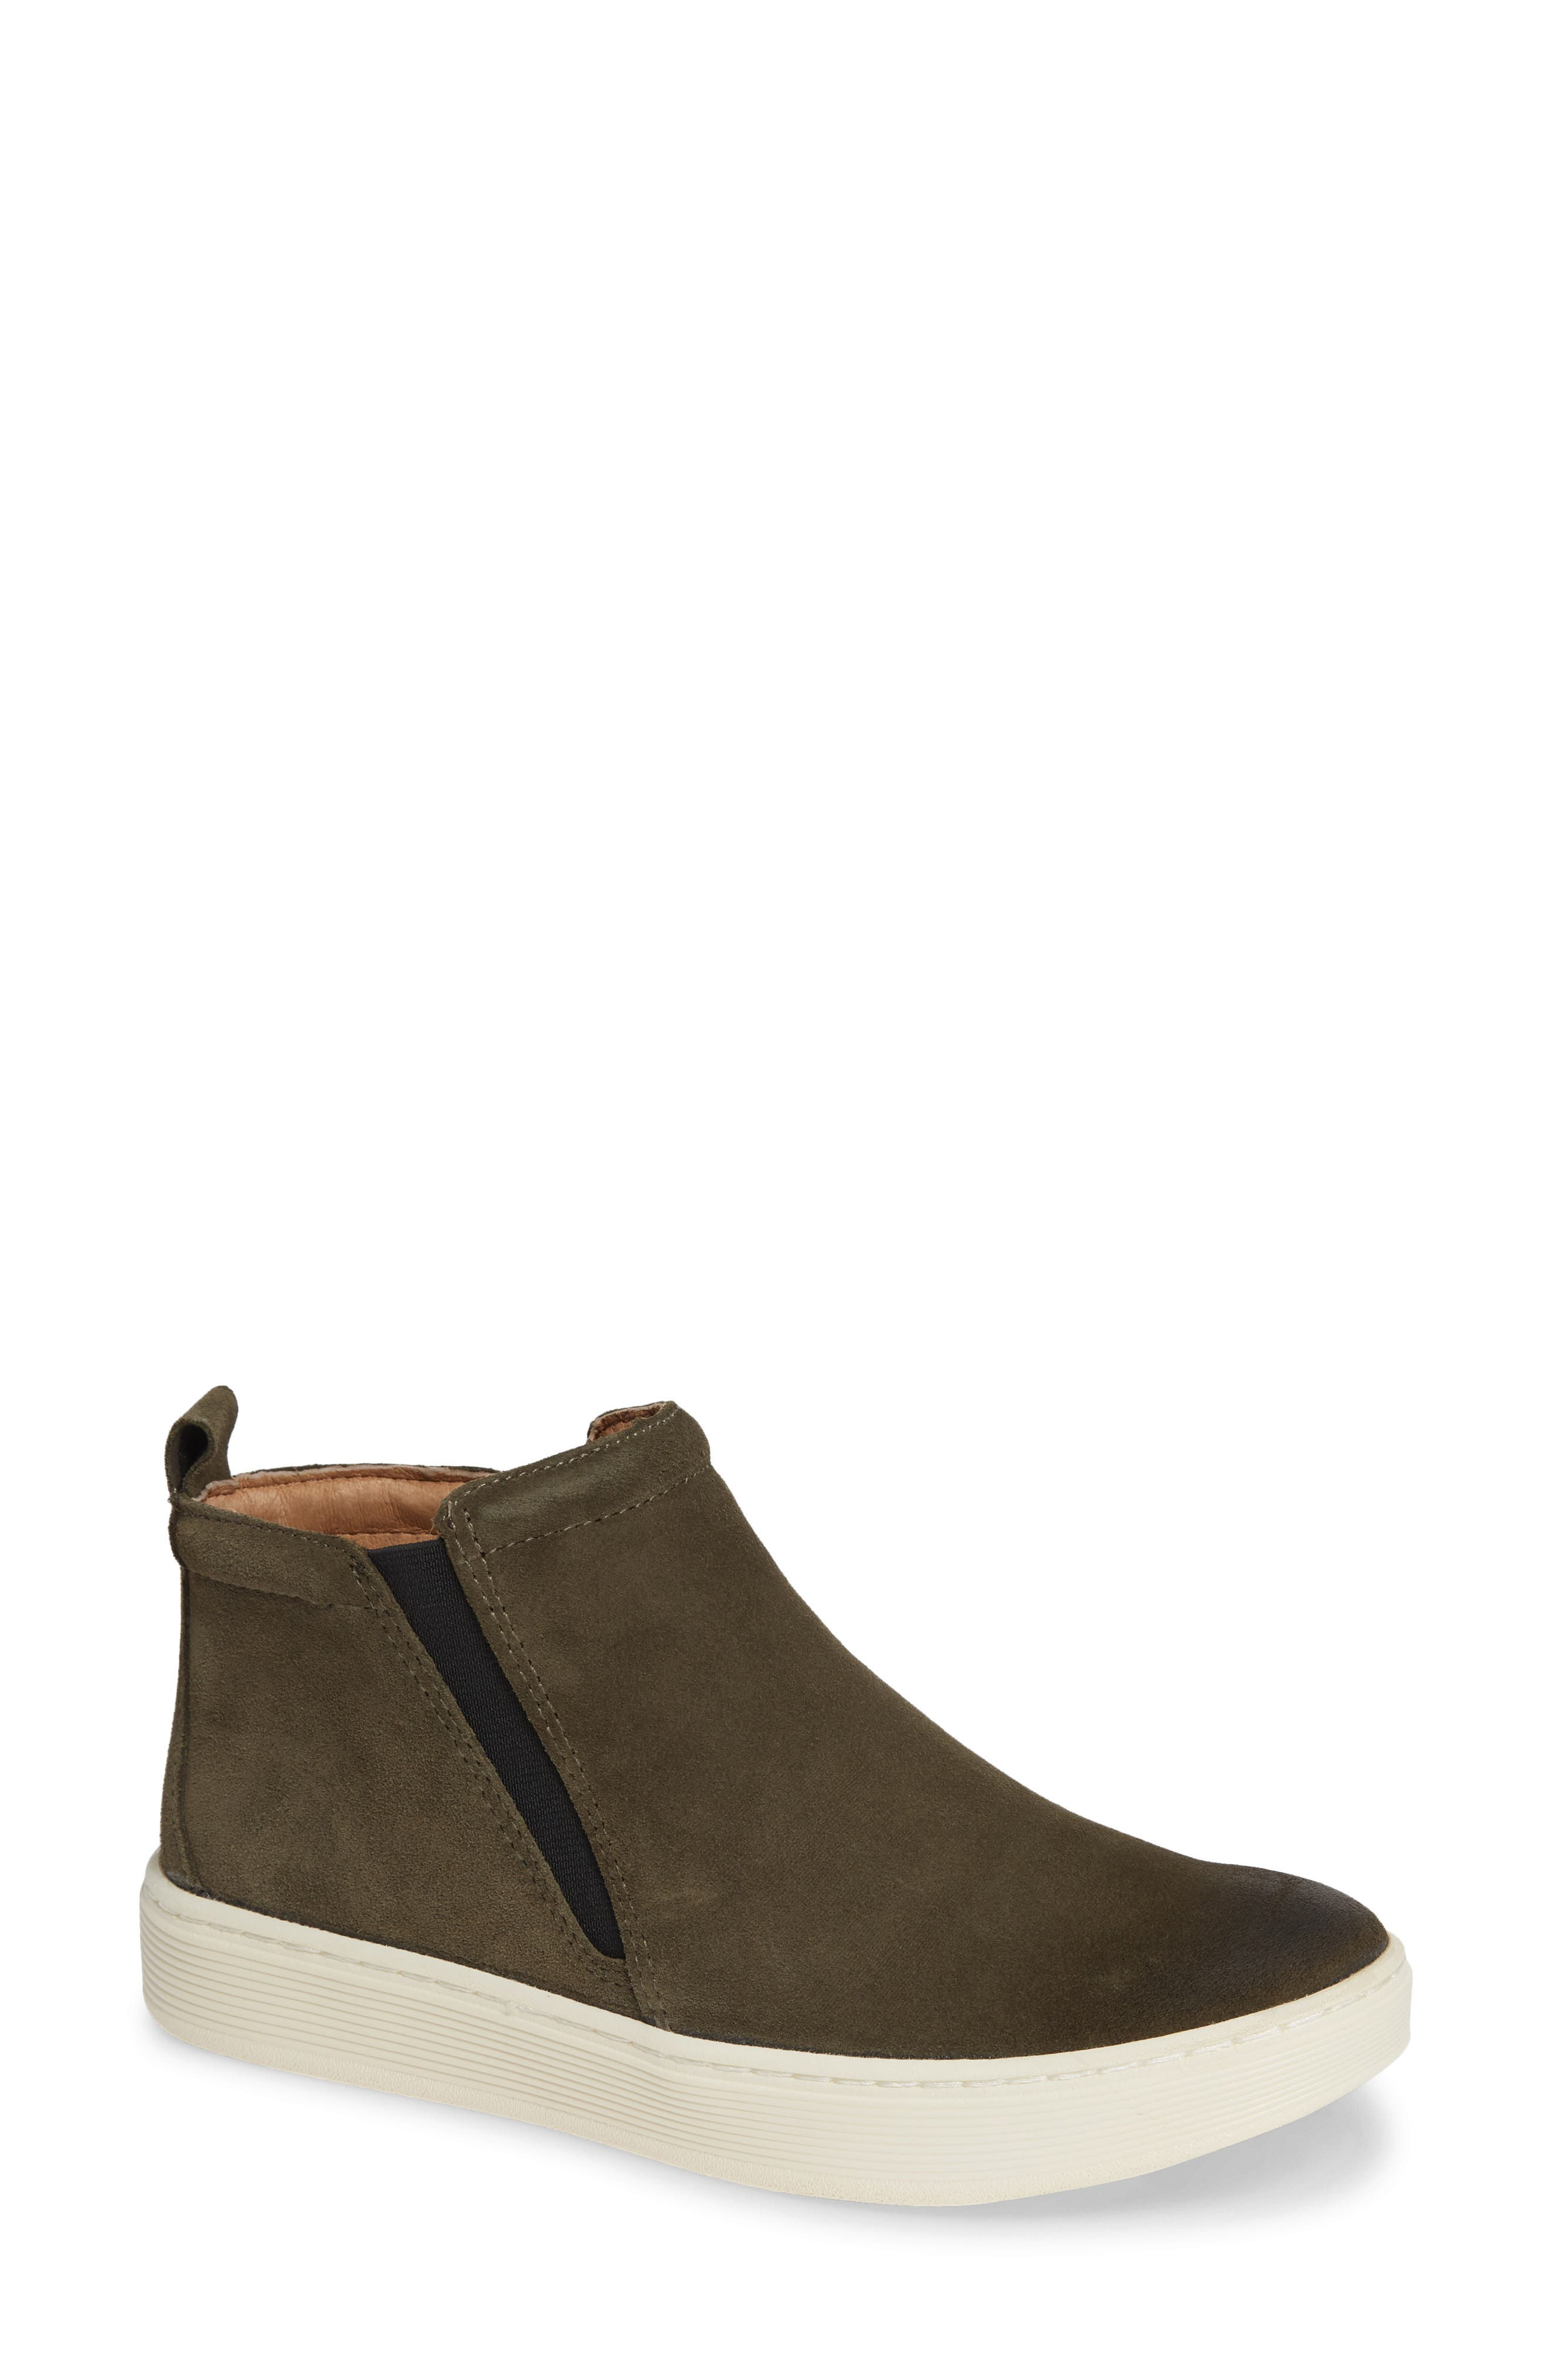 A sporty rubber platform lifts a sleek bootie crafted from smooth leather or soft suede. Style Name: Sofft Britton Ii Waterproof Sneaker Bootie (Women). Style Number: 5655539. Available in stores.